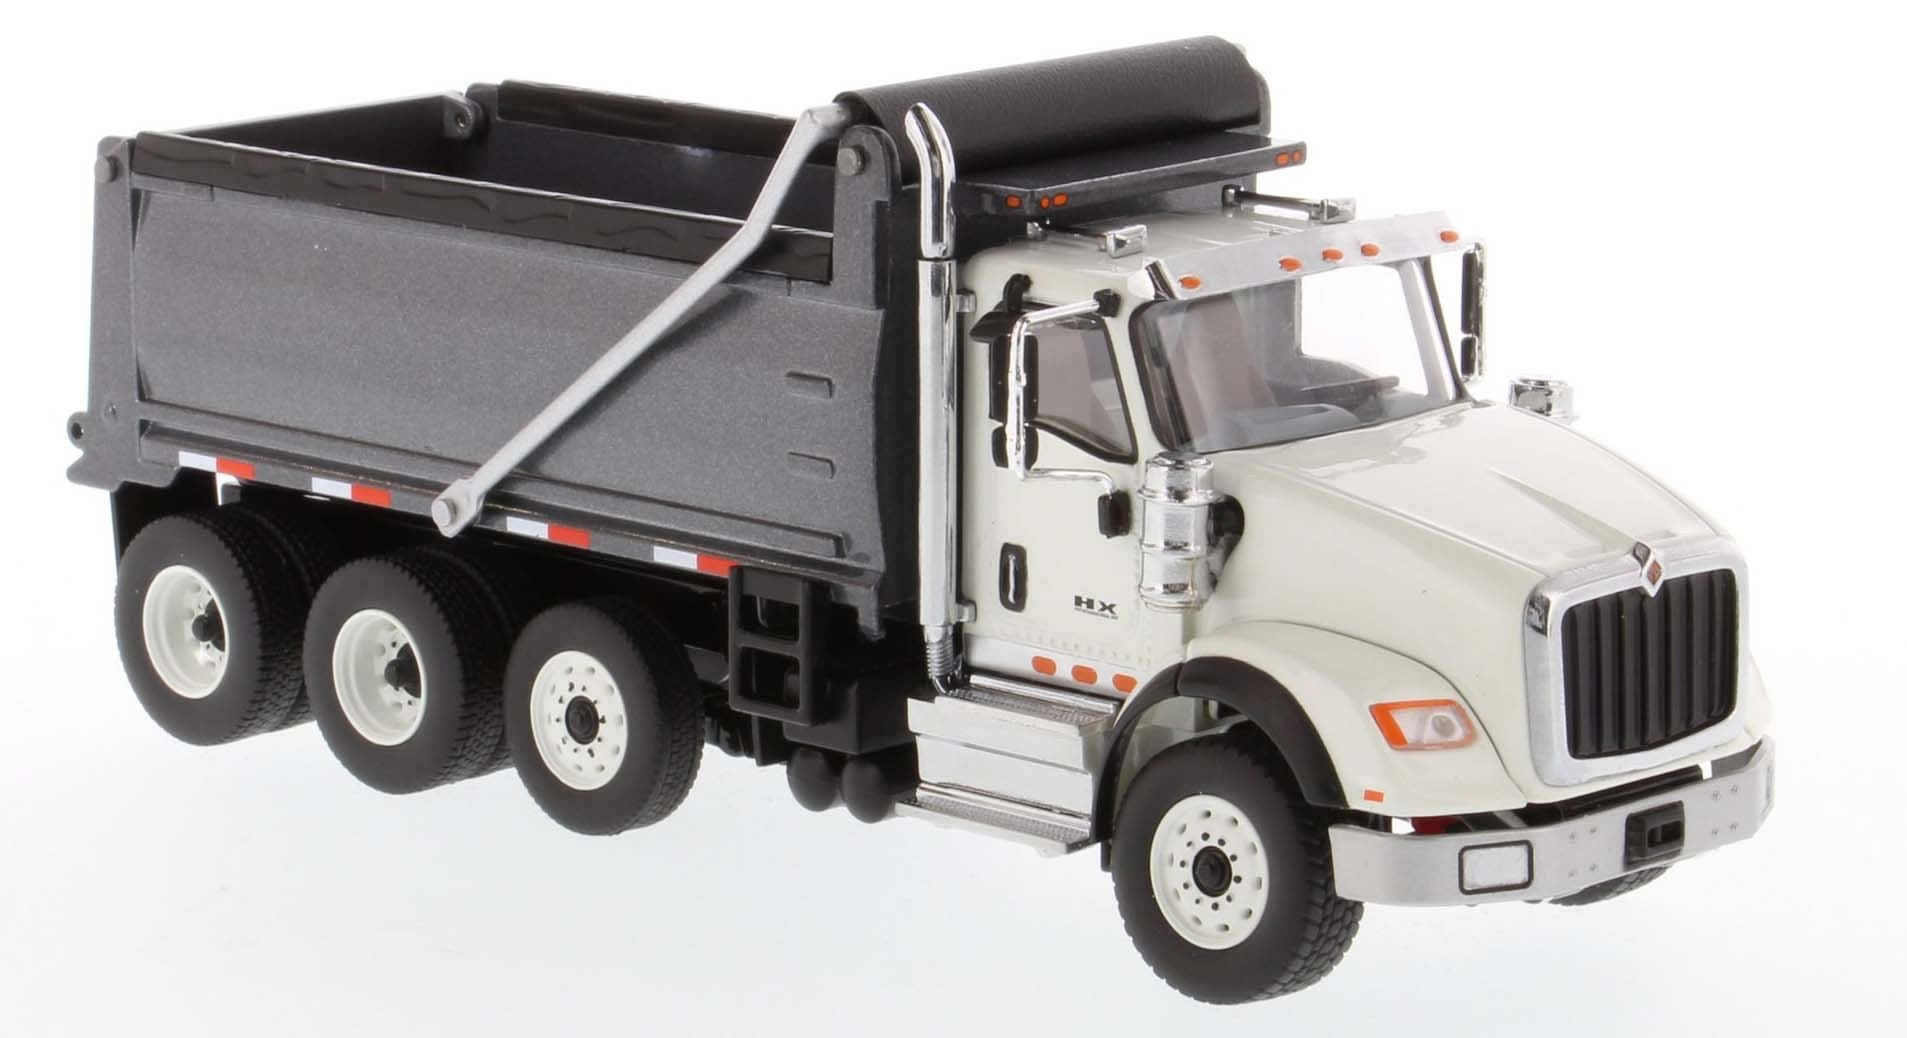 International HX620 Dump Truck in White with Gun Metal Grey Bed-PREORDER